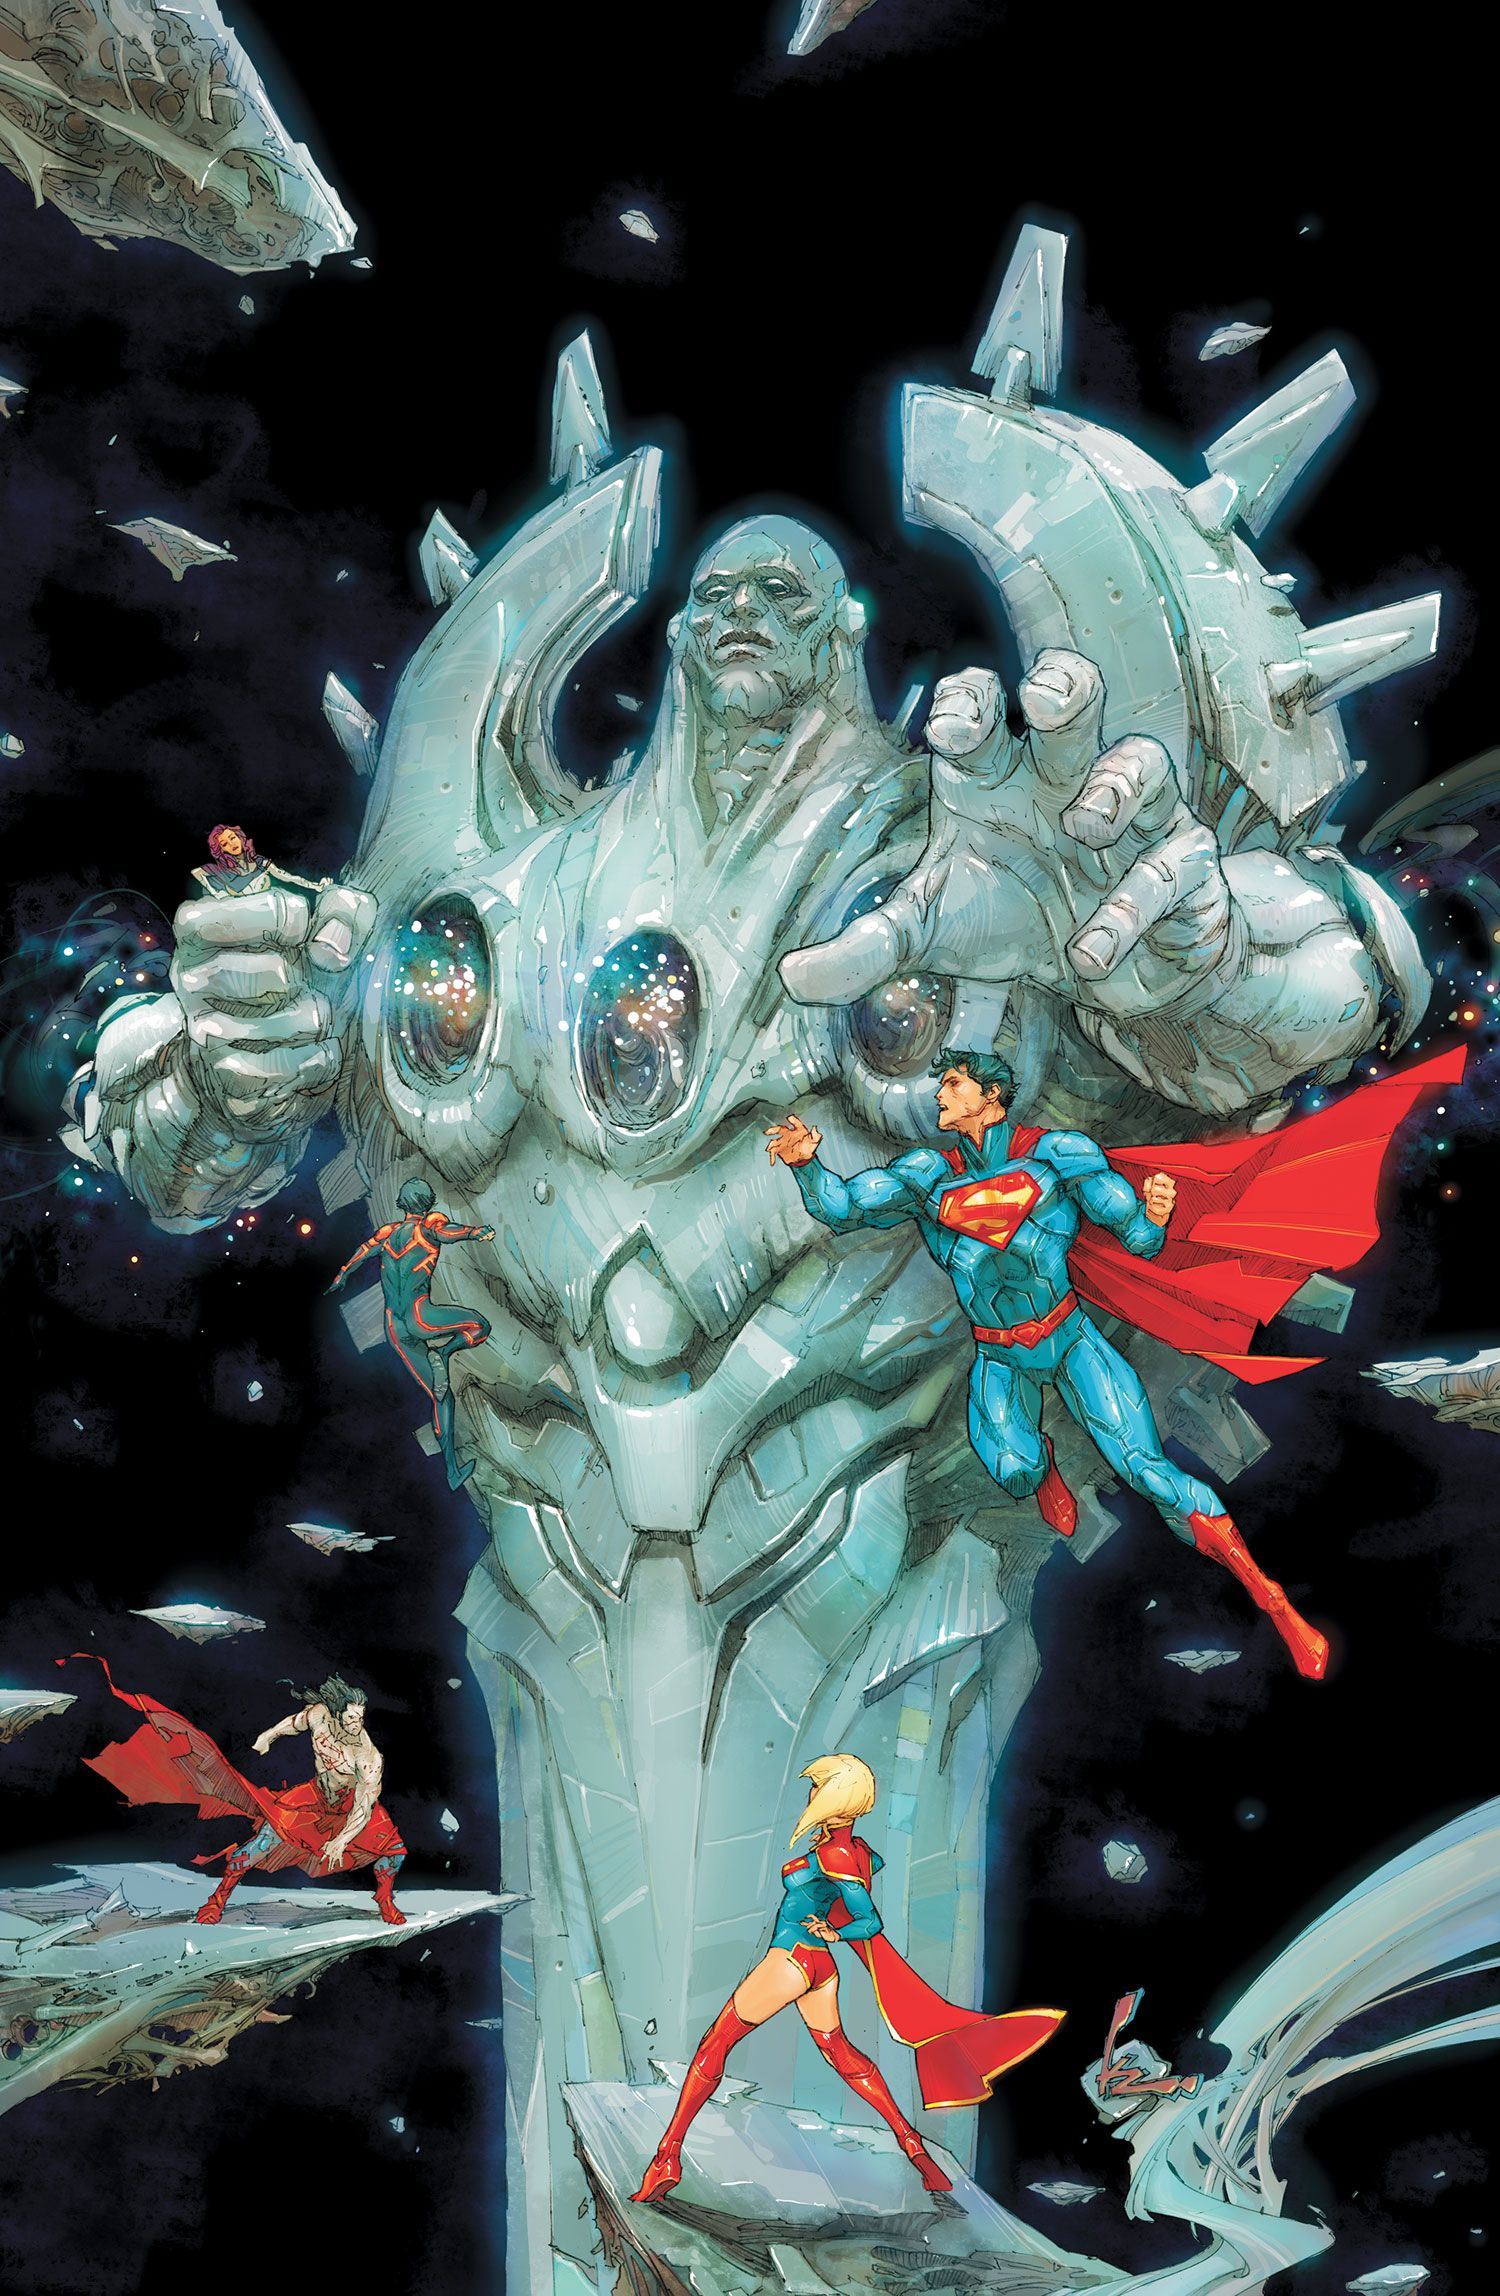 "#Superman #Fan #Art. (Superman ""Fury at World's End"" Vol.3 #17 Cover) By: Kenneth Rocafort. (THE * 5 * STÅR * ÅWARD * OF: * AW YEAH, IT'S MAJOR ÅWESOMENESS!!!™)[THANK U 4 PINNING!!!<·><]<©>ÅÅÅ+(OB4E)   https://s-media-cache-ak0.pinimg.com/564x/b5/dc/d3/b5dcd316abe9a372d7d74e578ac3922d.jpg"